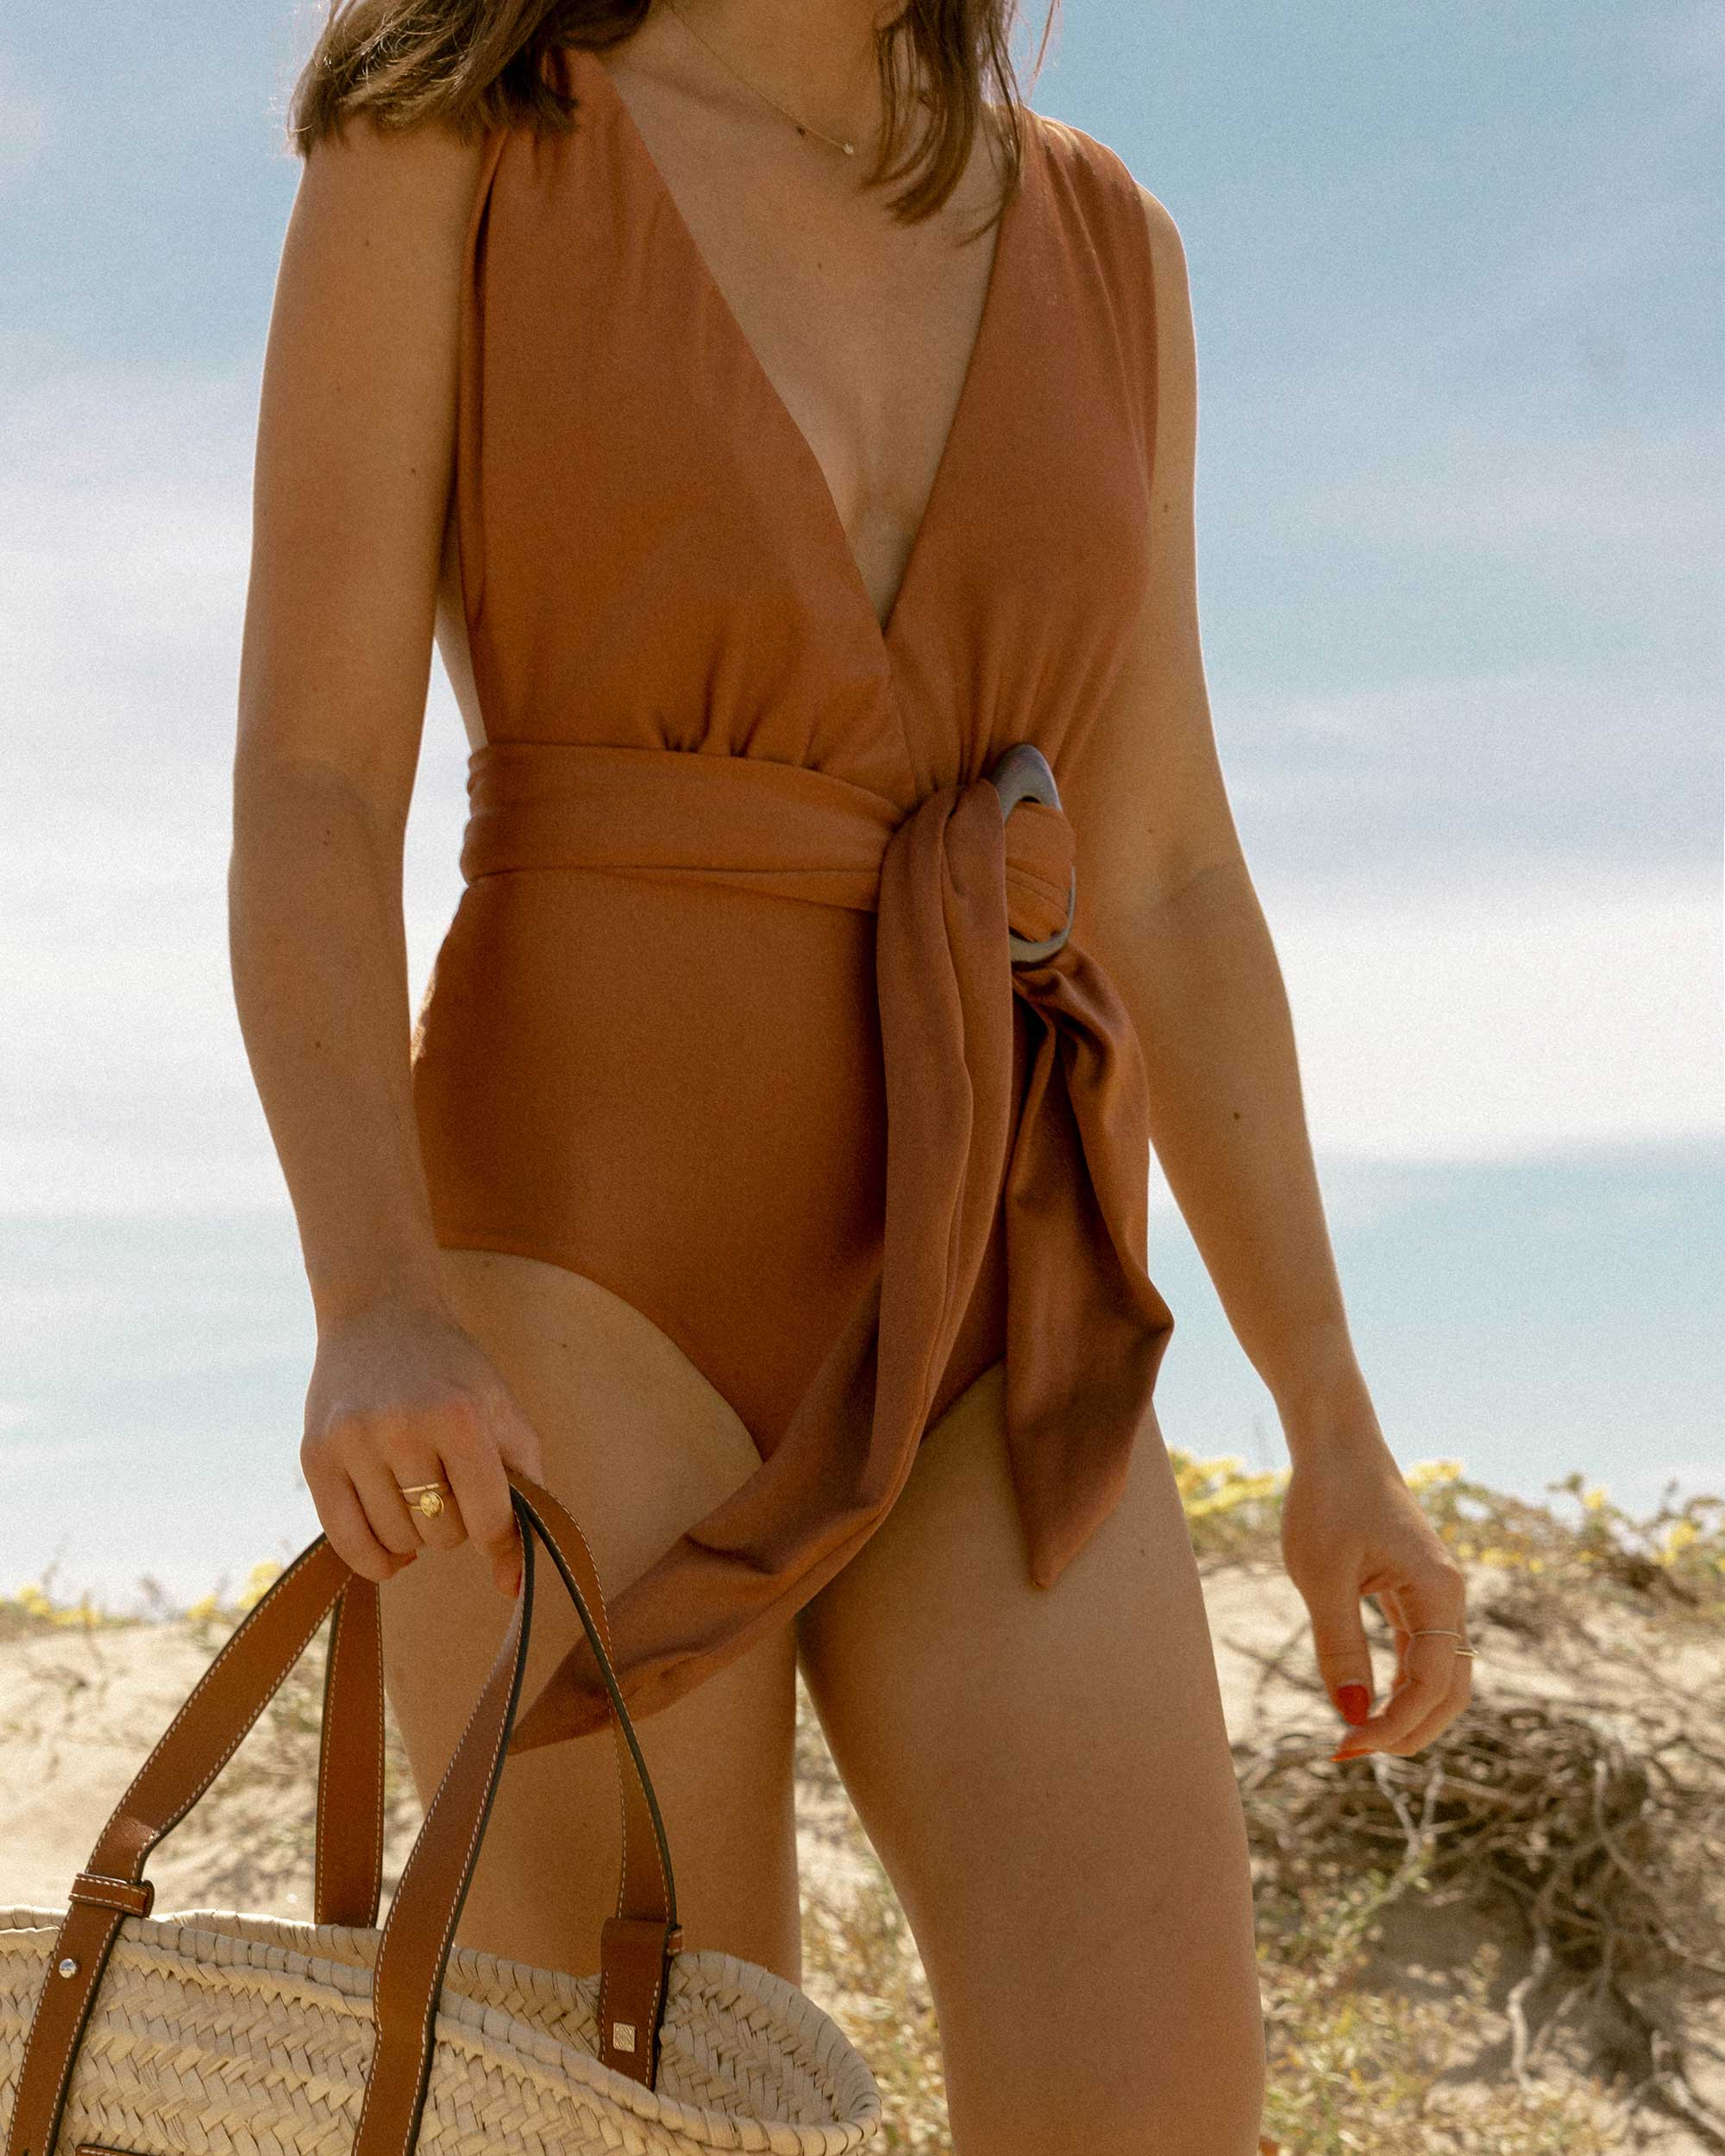 Sarah Butler of Sarah Styles Seattle wears Patbo solid brown belted swimsuit and Loewe Small Raffia Basket Tote Bag for Stylish one-piece swimsuit to wear to the beach | @sarahchristine -12.jpg